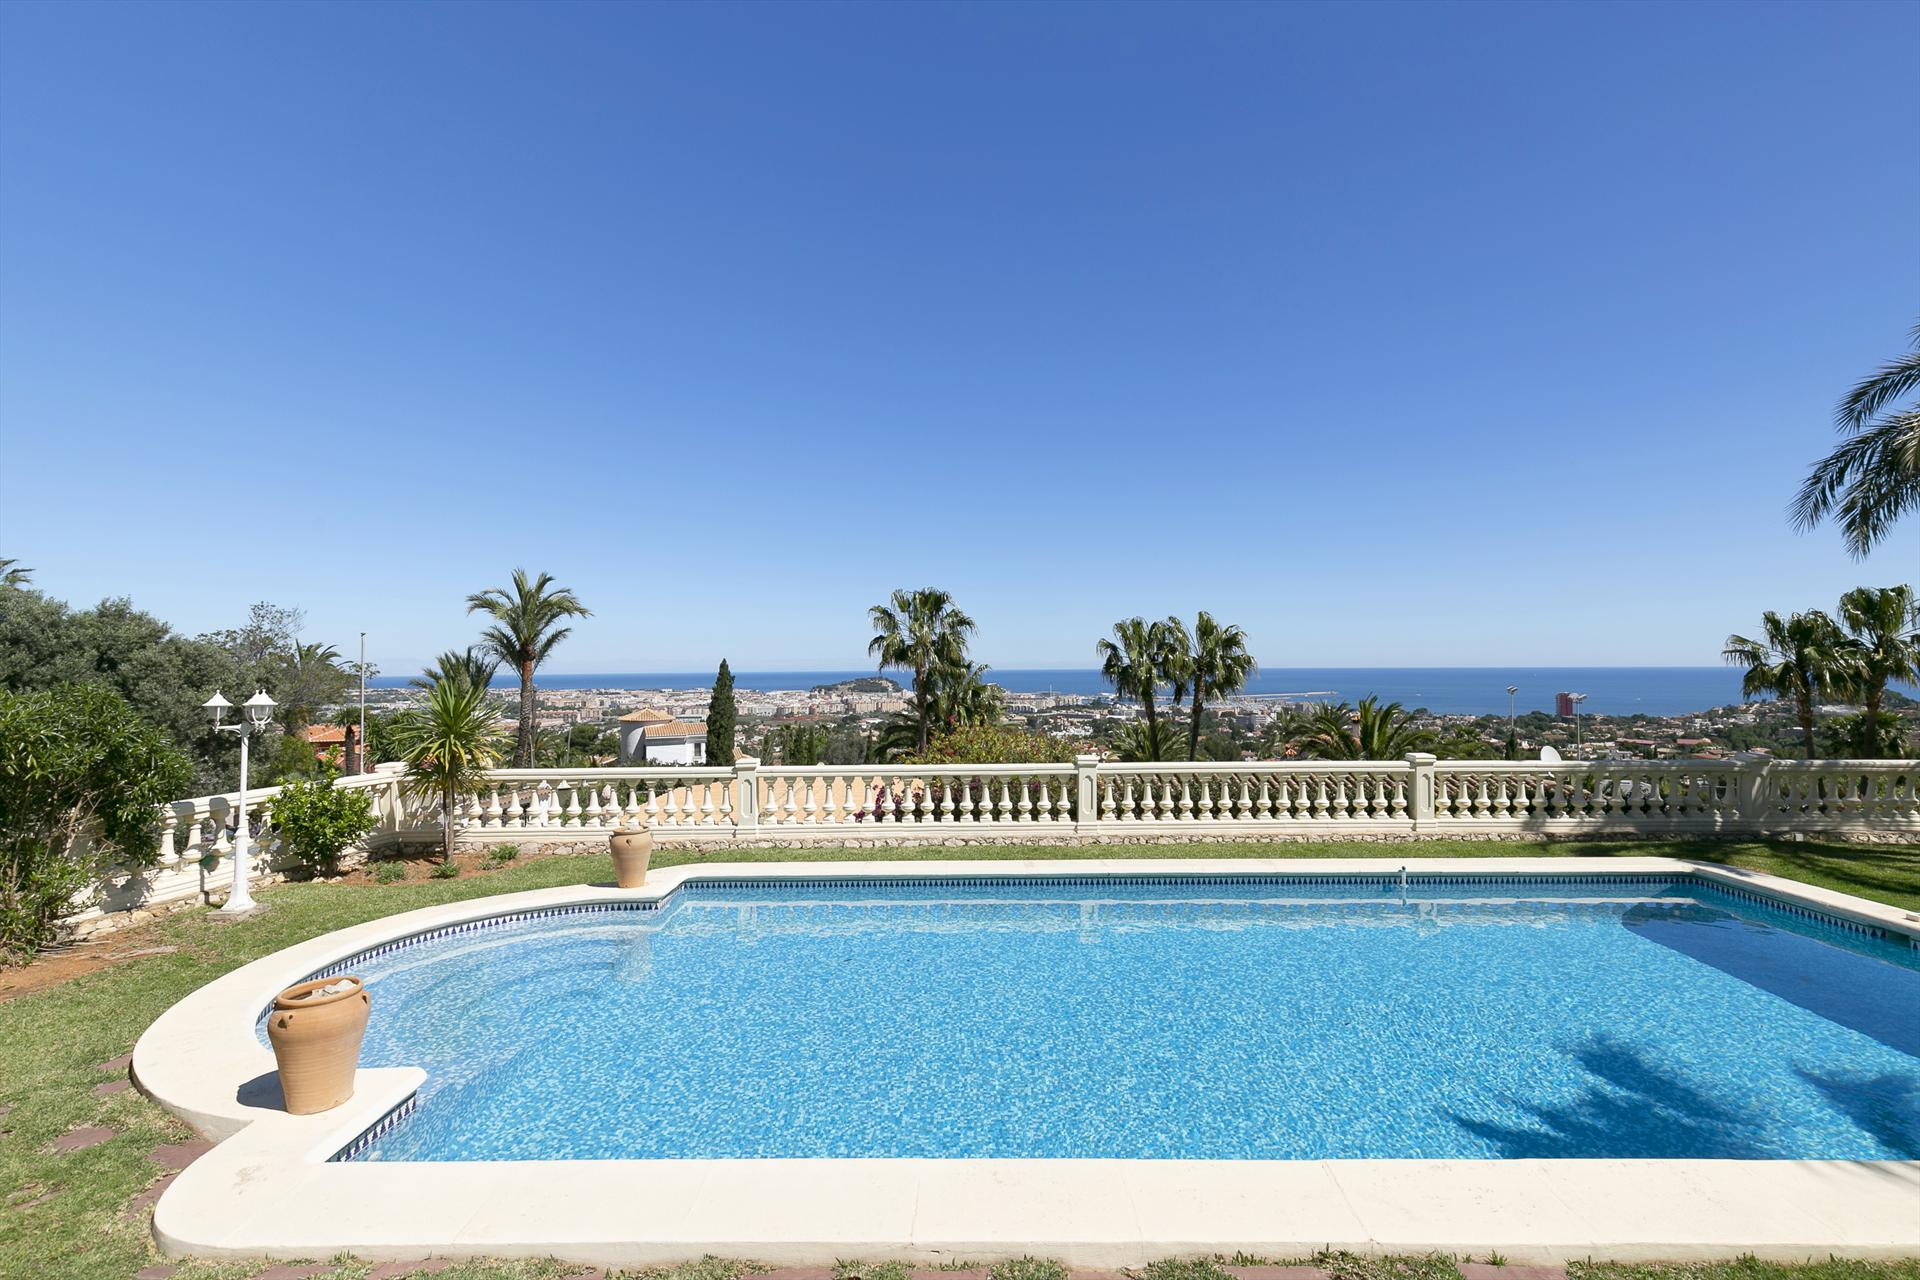 Villa Montgo Denia, Villa  with private pool in Denia, on the Costa Blanca, Spain for 4 persons...